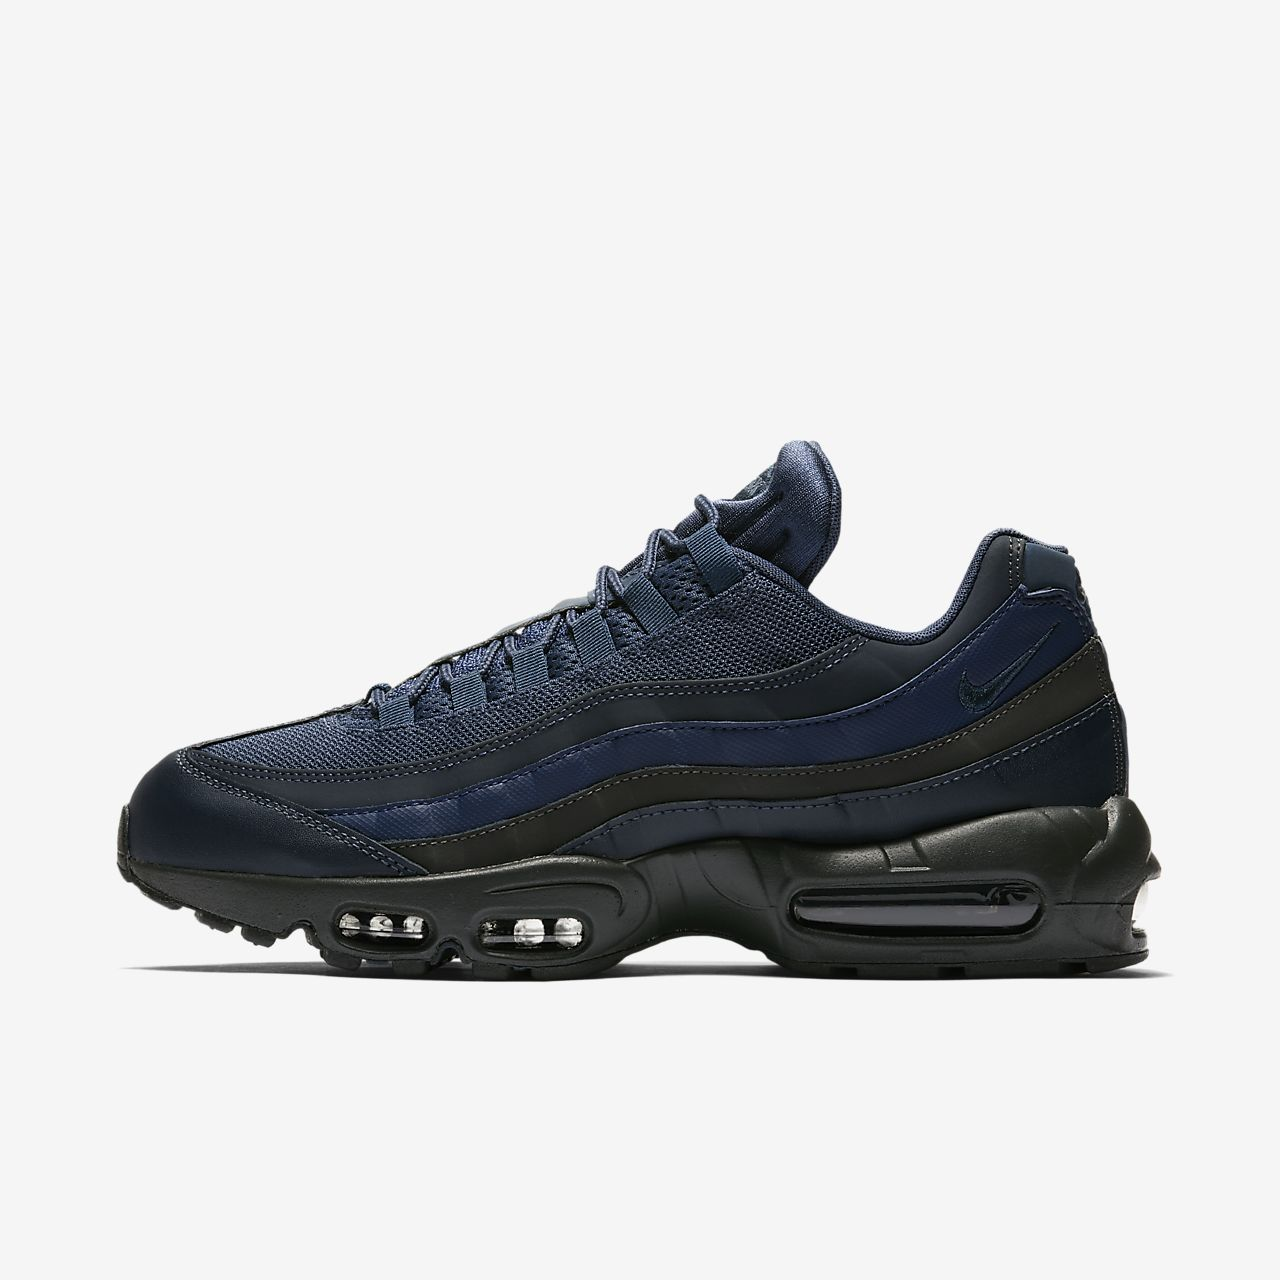 official photos c5b50 724a1 Nike Air Max 95 Essential